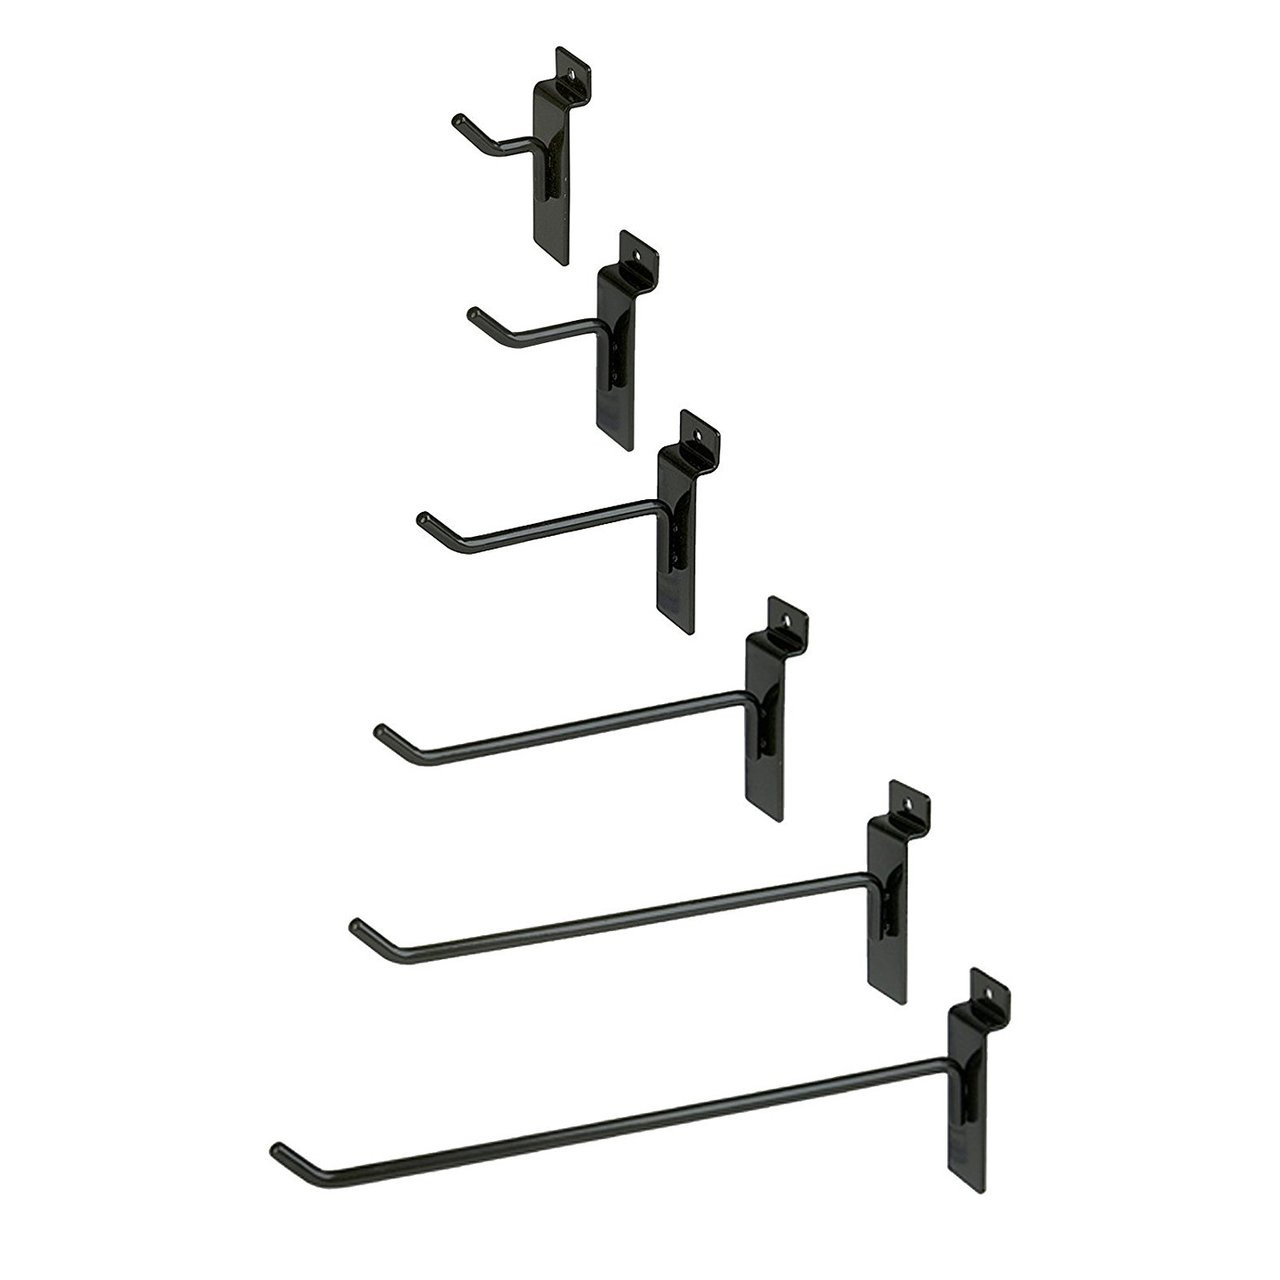 Black Slatwall Hooks - Store Fixtures Direct